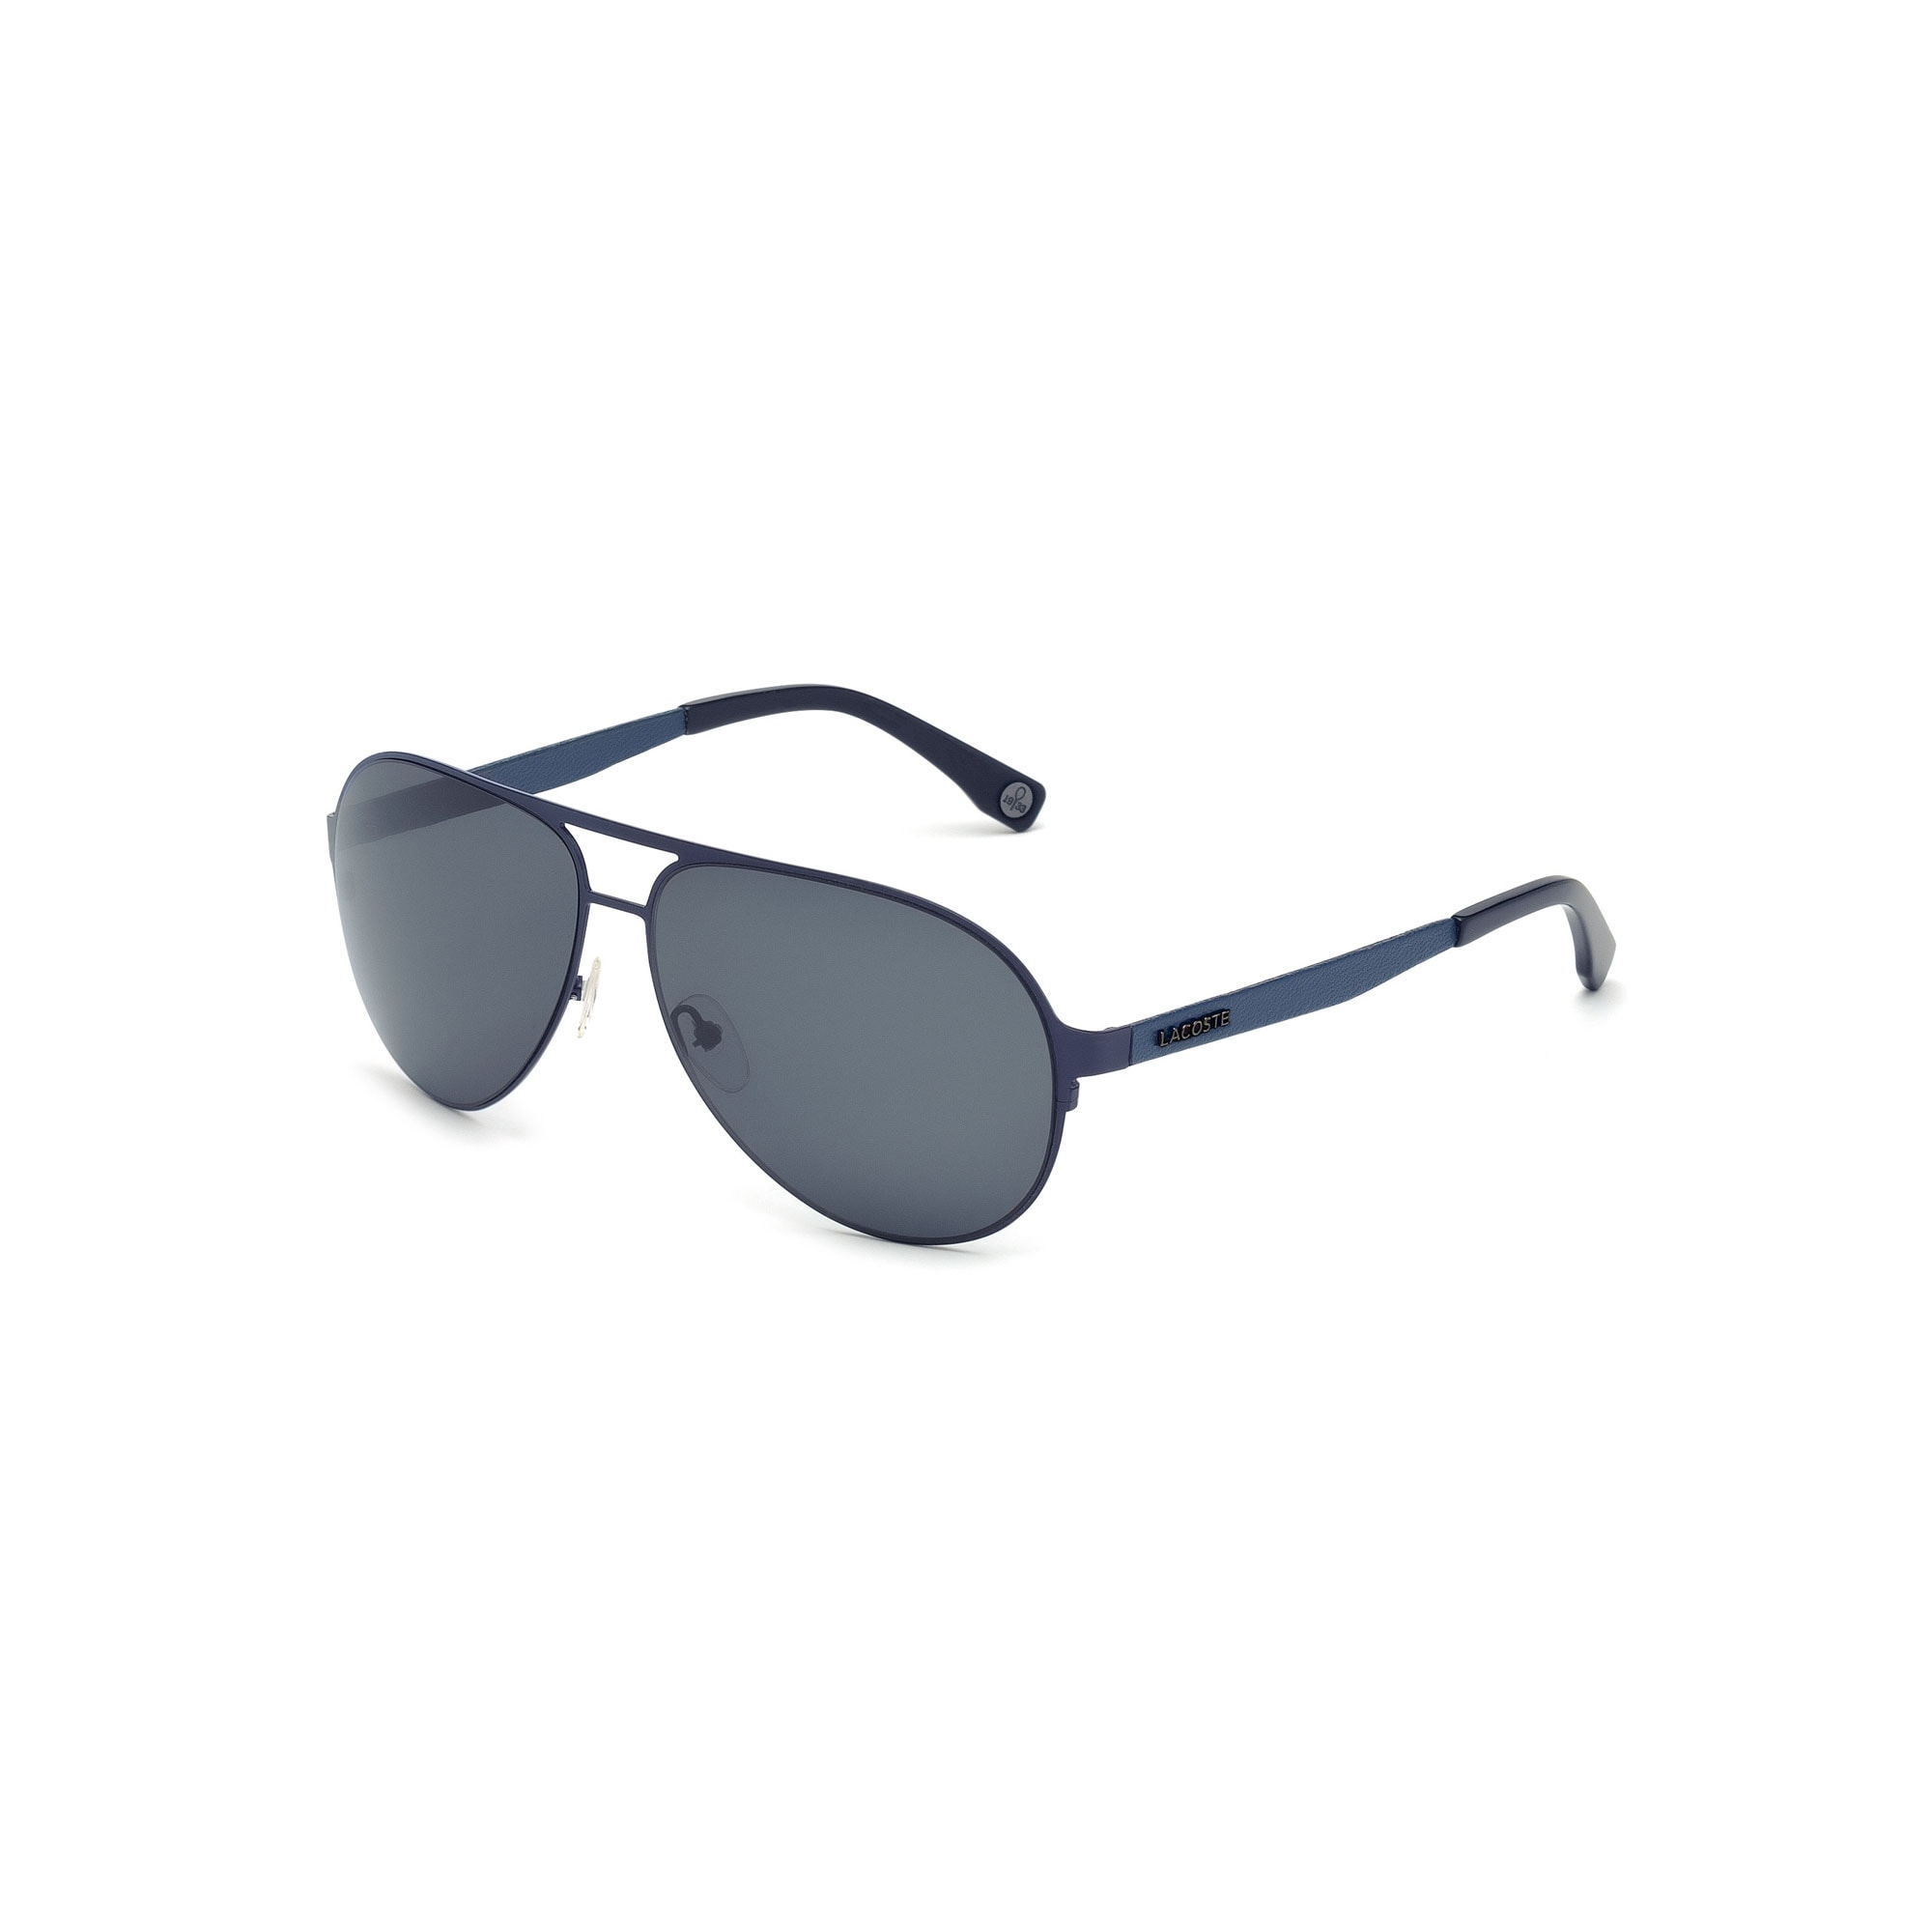 Leather Edition Sunglasses